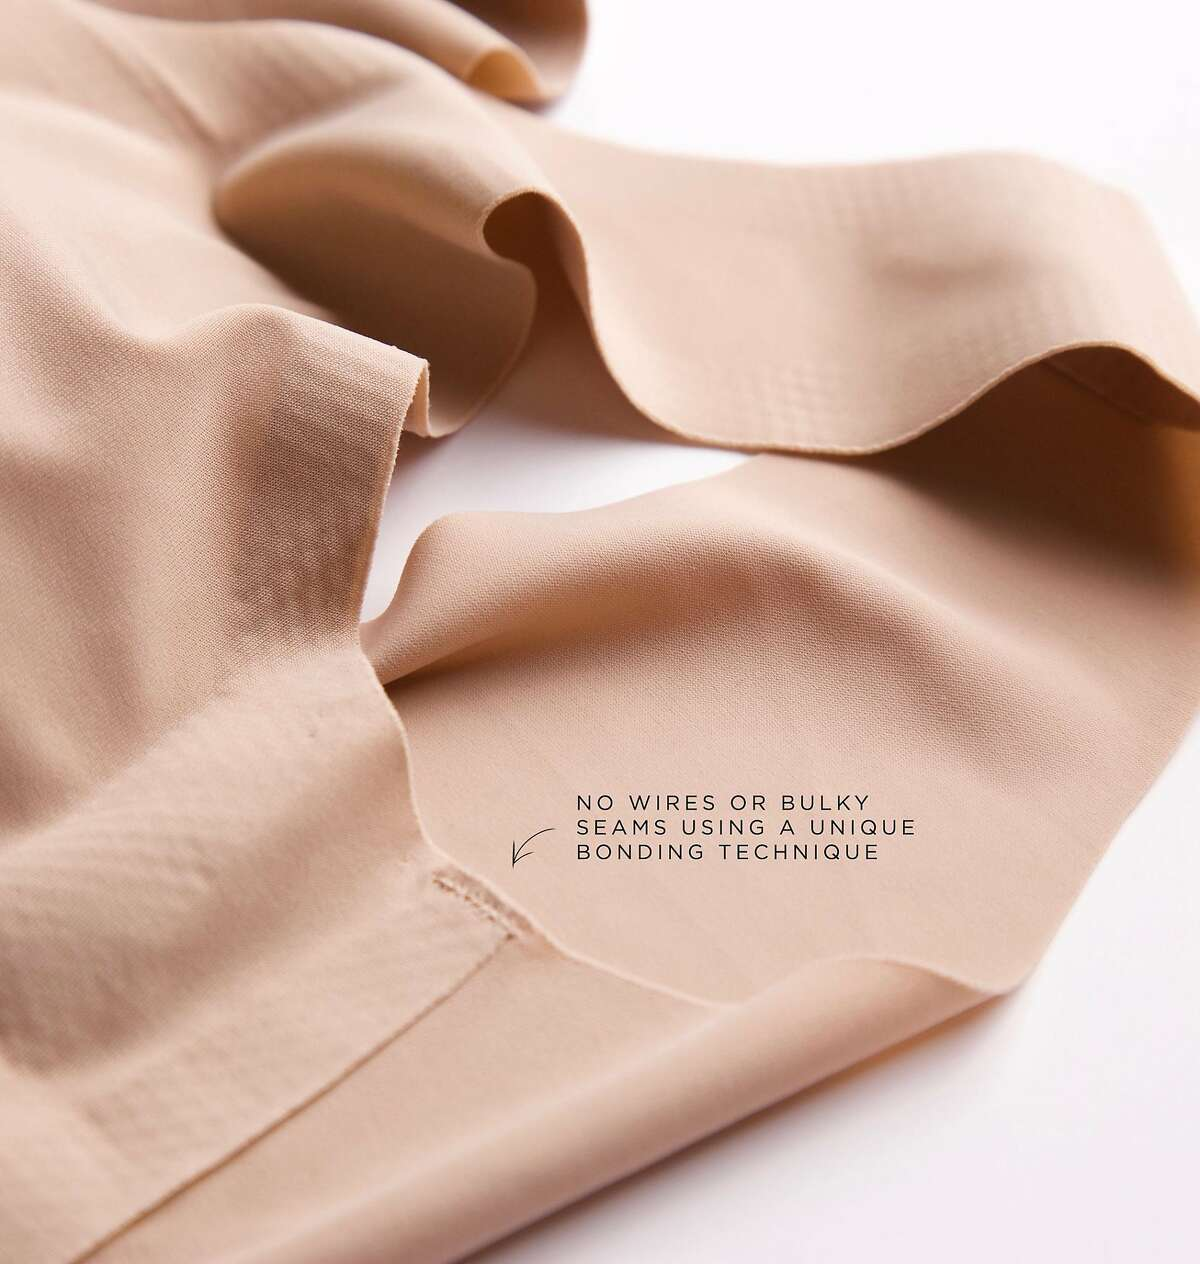 """True & Co. founder Michelle Lam says she saw customers moving away from the pushup bra trend toward easy fit """"from a mile away."""" This led to the company�s new seamless True Body collection. Photo Credit: True & Co."""